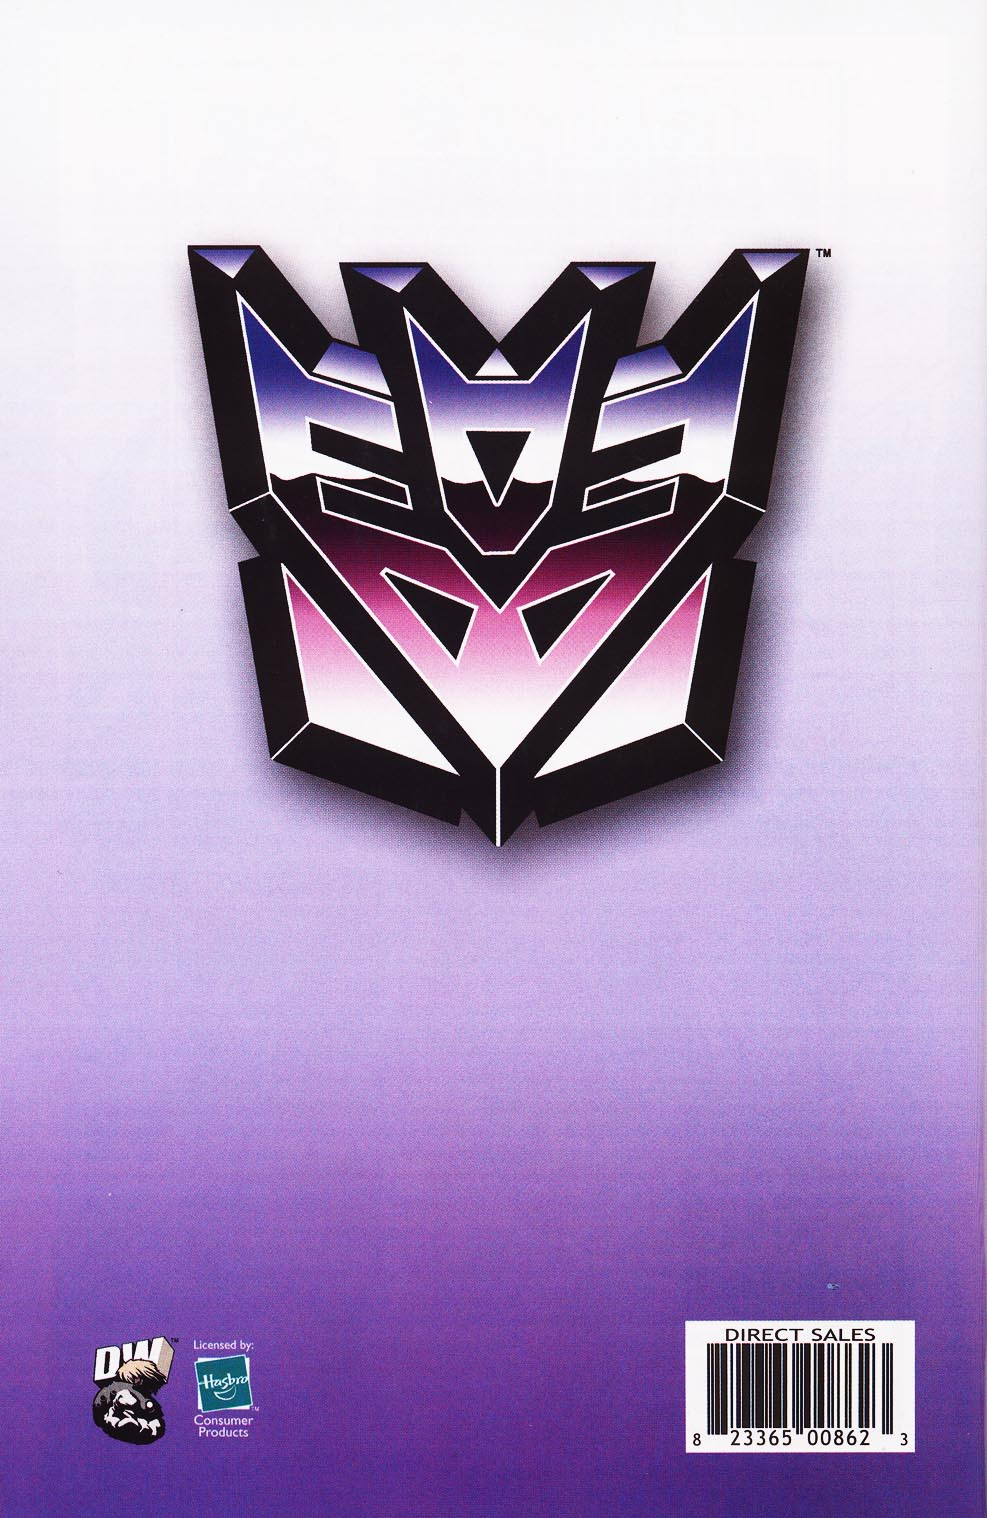 Read online Transformers: More than Meets the Eye comic -  Issue #4 - 69